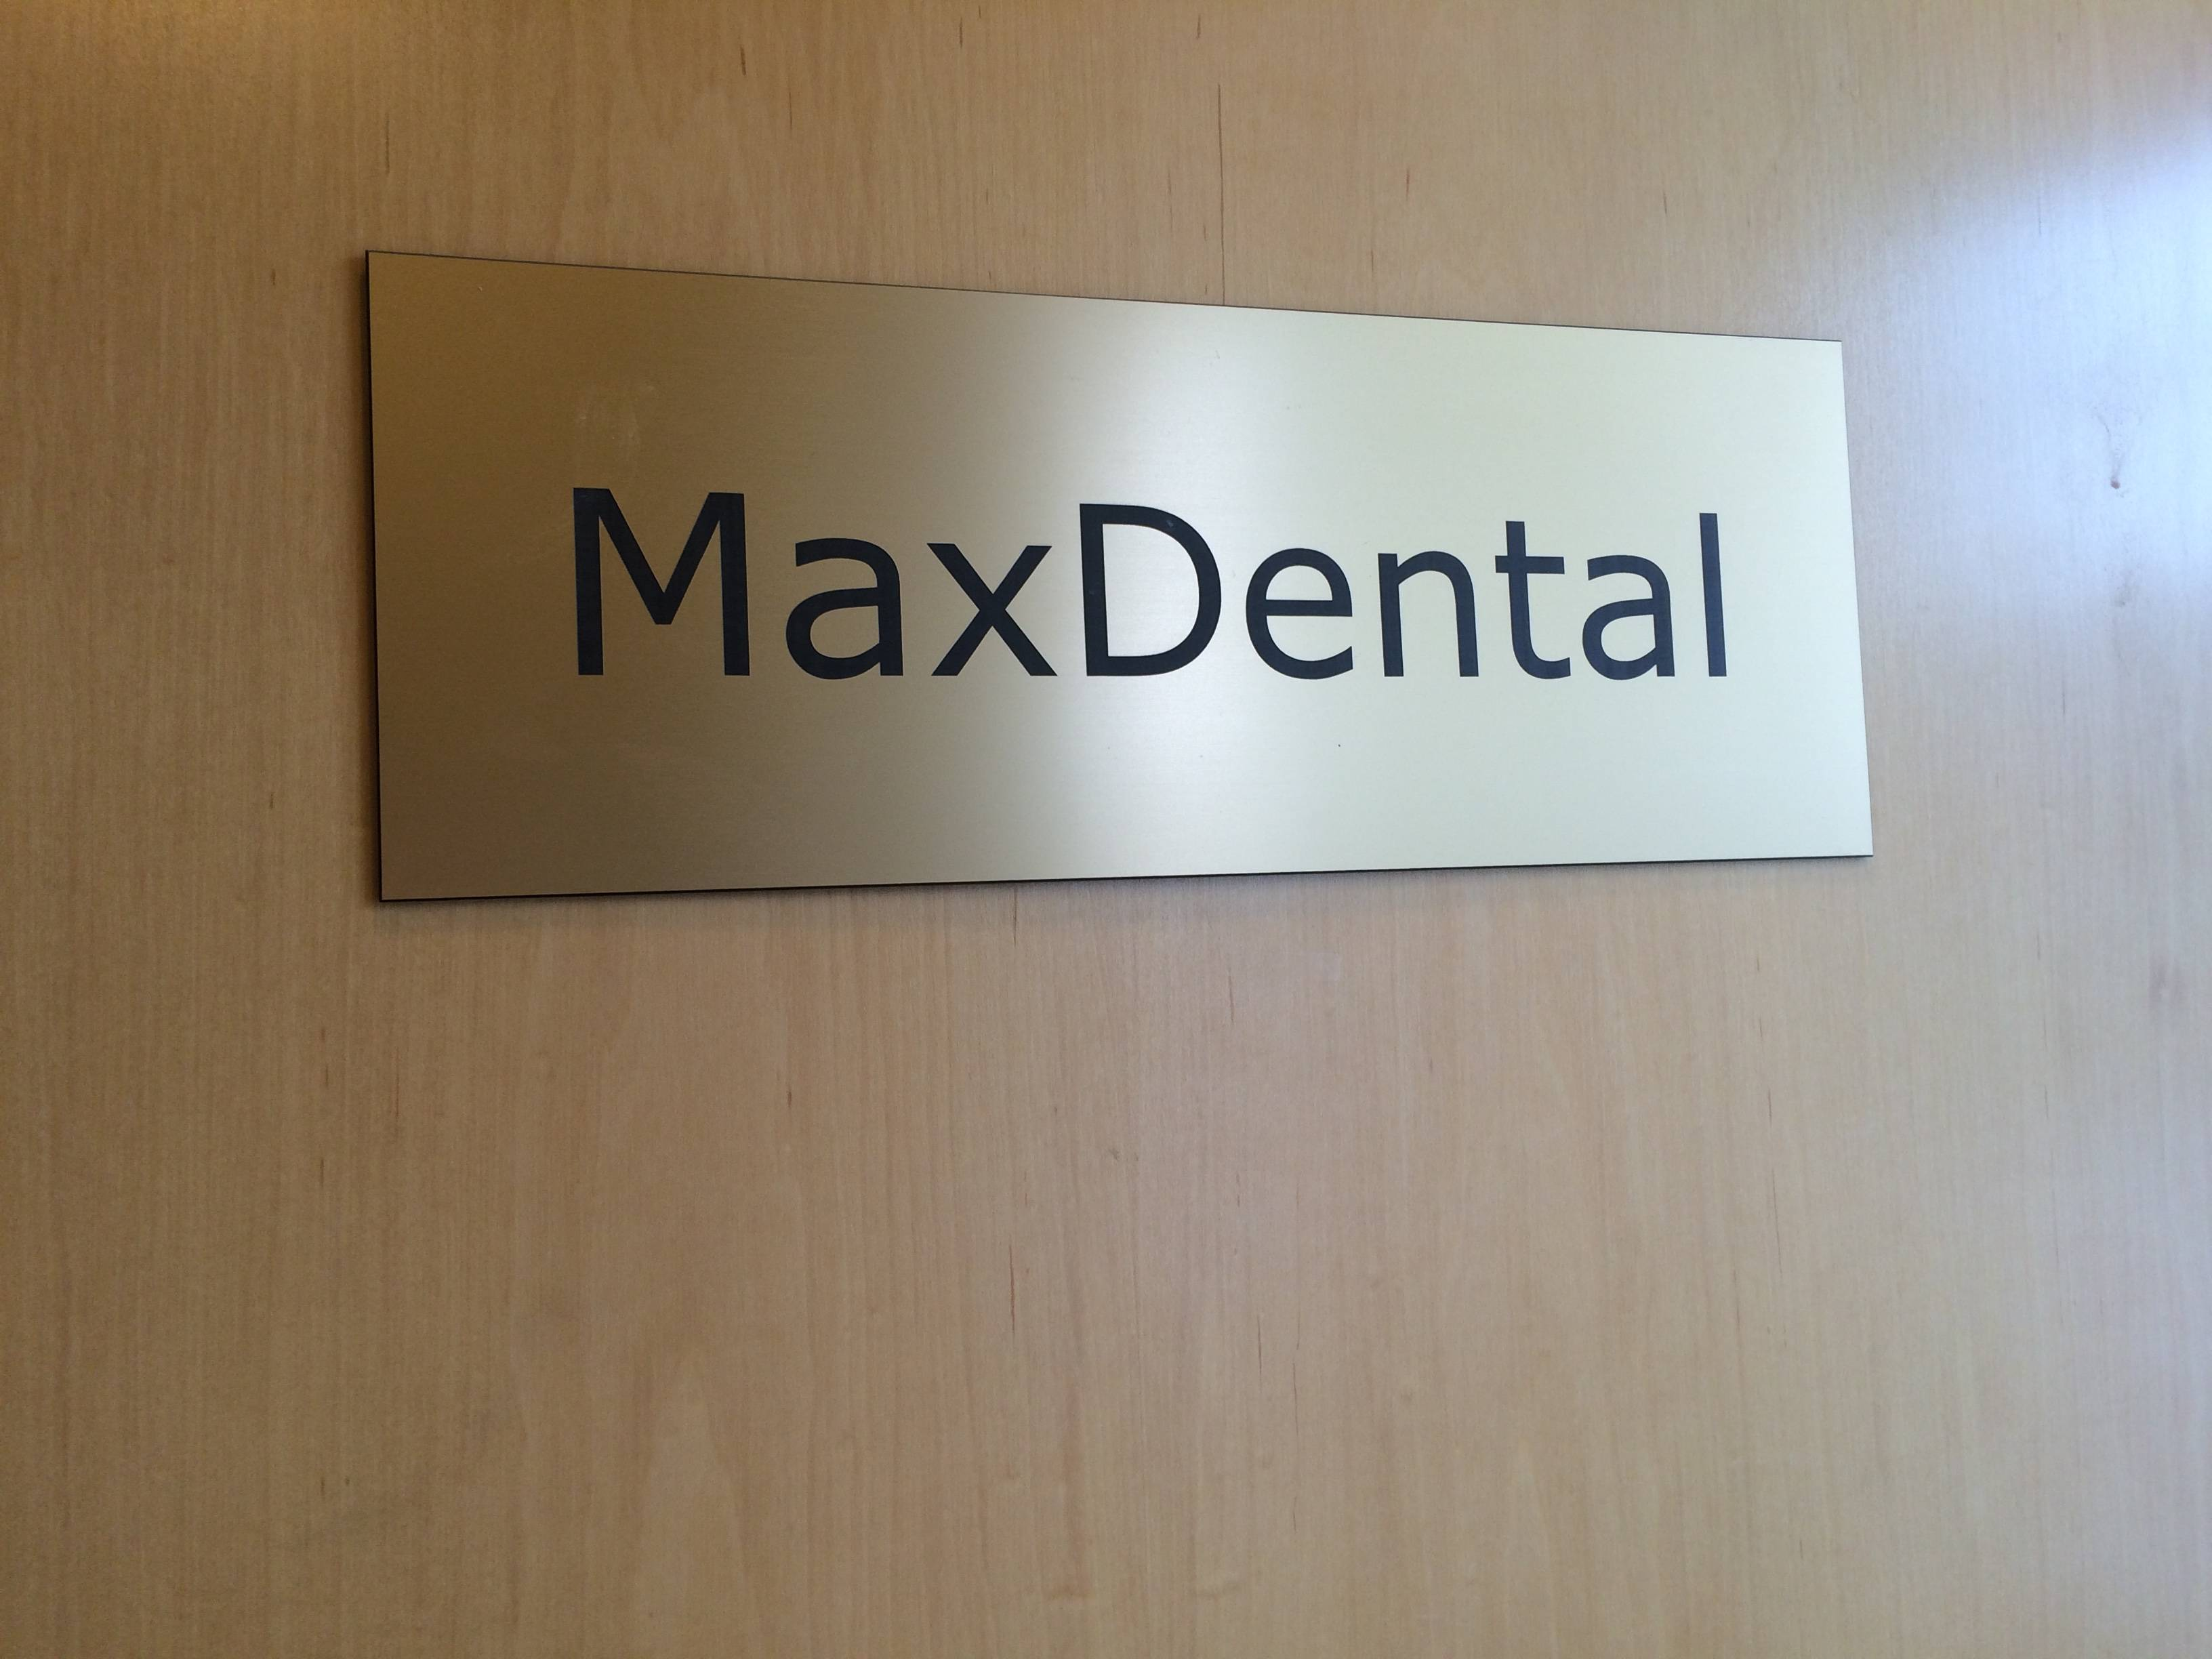 Dr. Max Dental in Wilton, CT